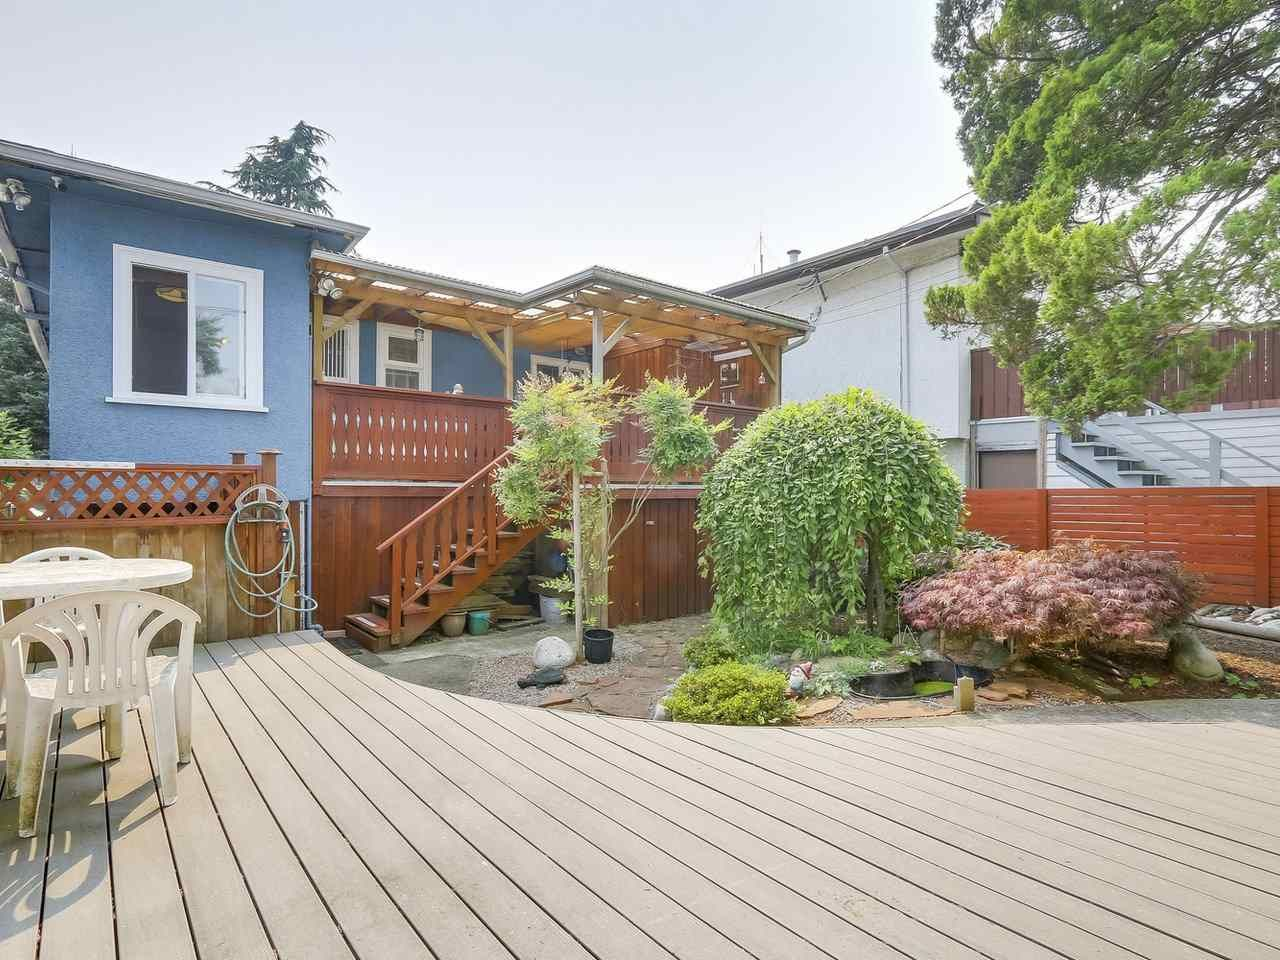 Photo 20: Photos: 165 E 55TH AVENUE in Vancouver: South Vancouver House for sale (Vancouver East)  : MLS®# R2297472